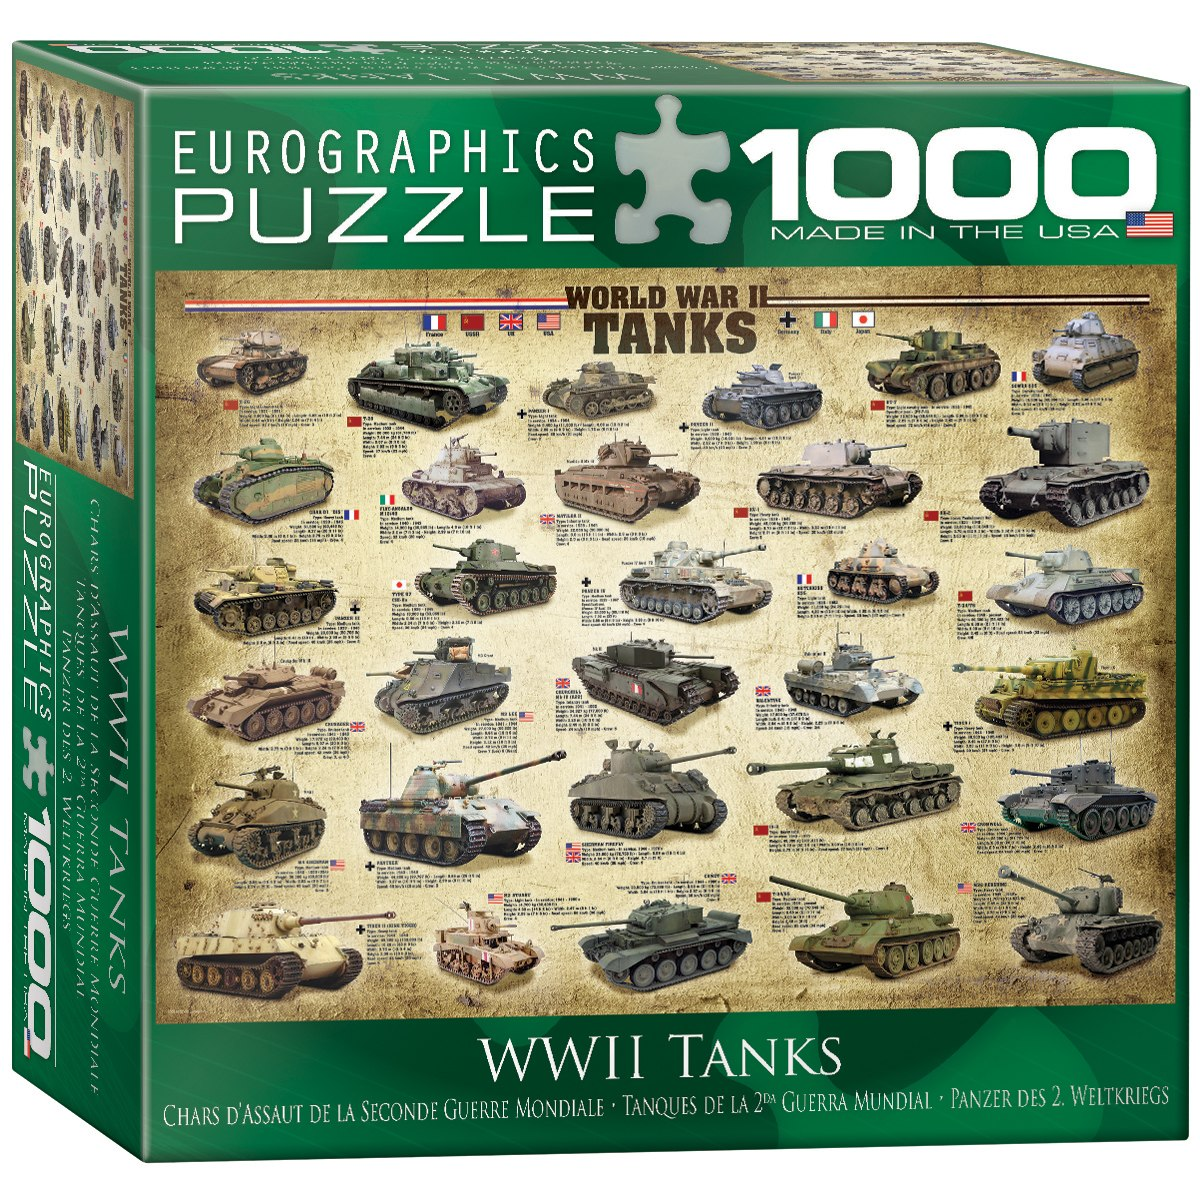 Tanks of WWII (Small Box) - 1000pc Jigsaw Puzzle by Eurographics